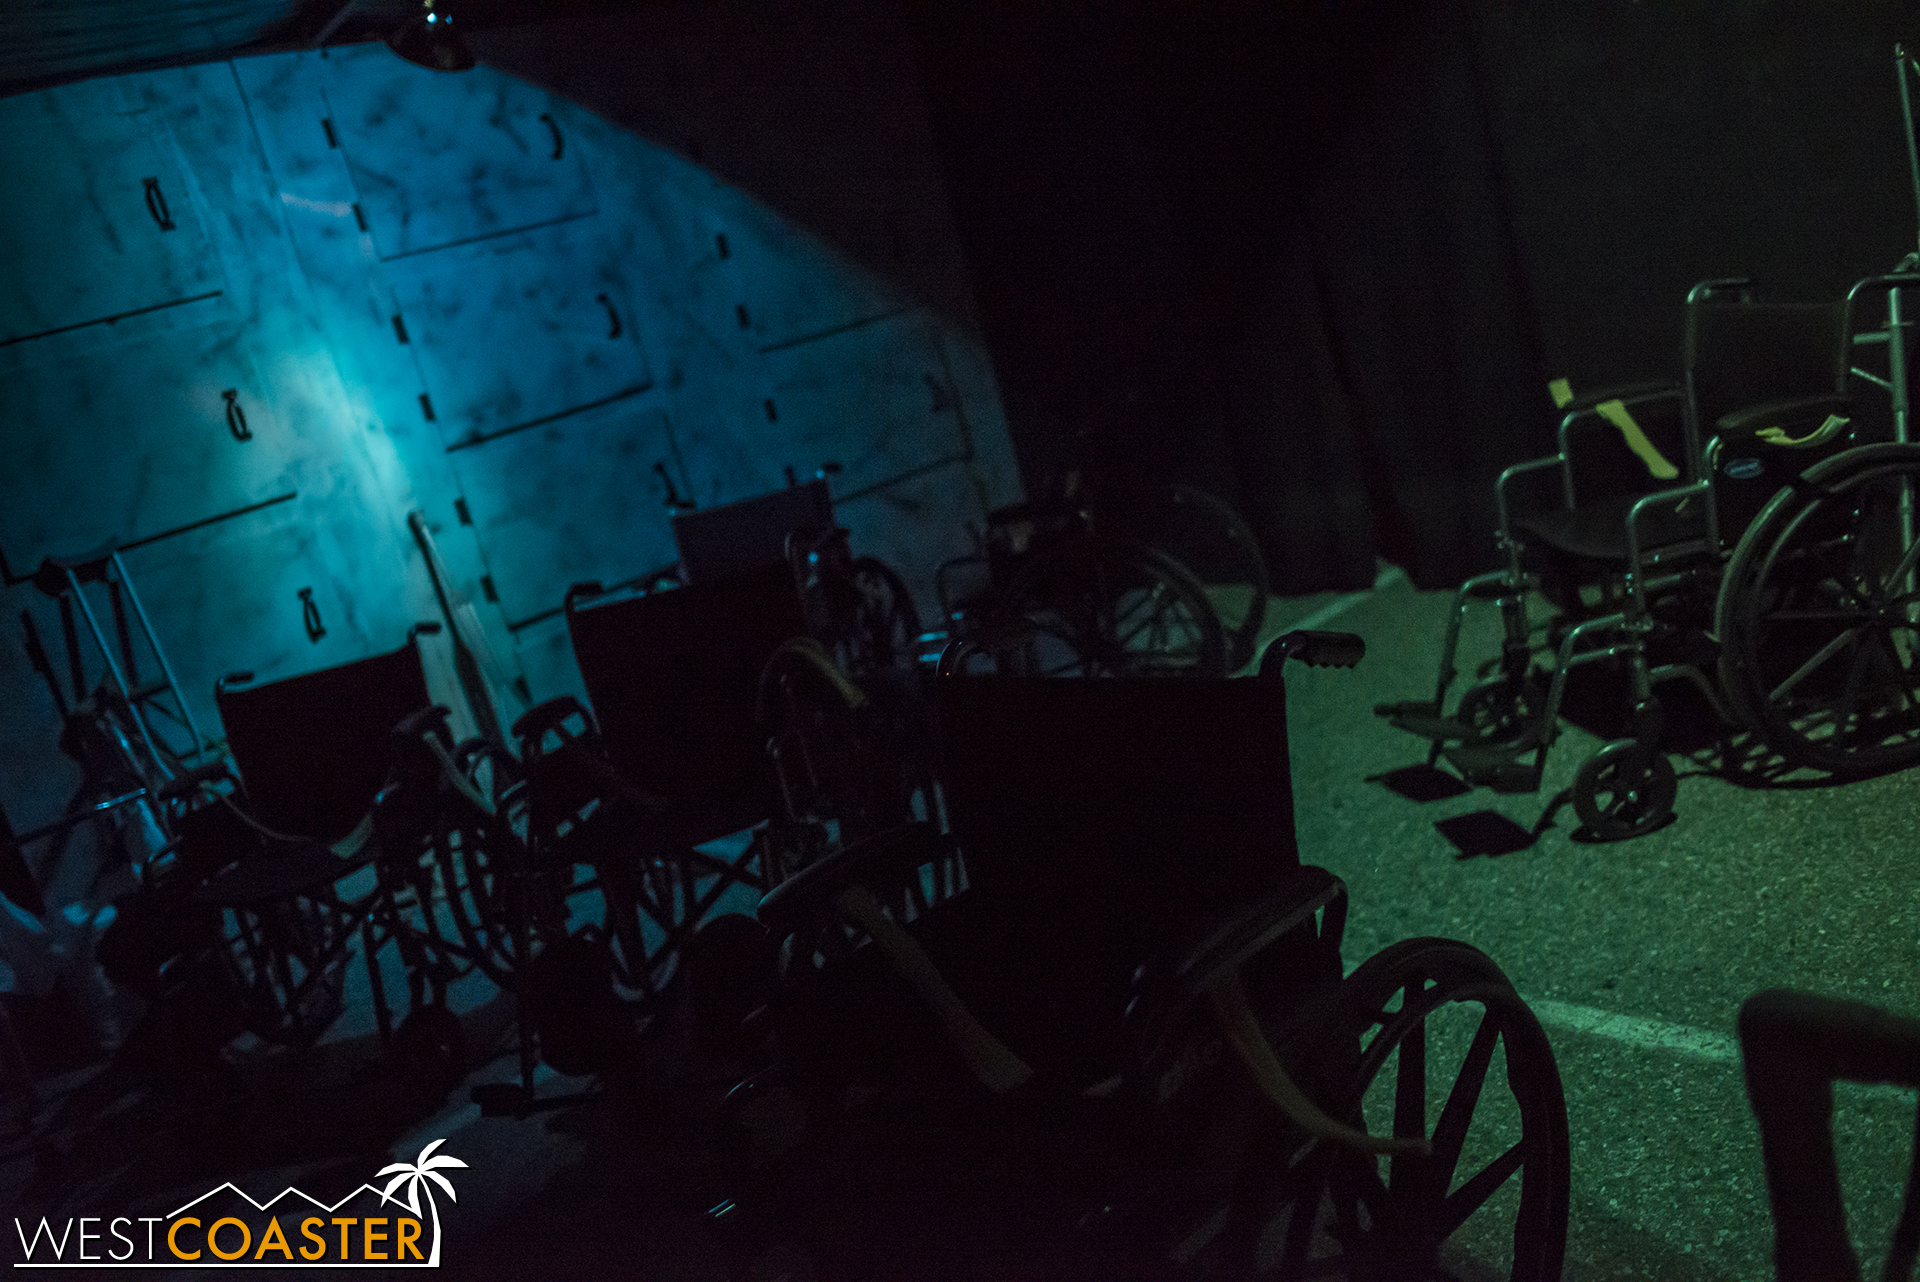 After crawling through a tunnel, we came into a morgue littered with wheelchairs.